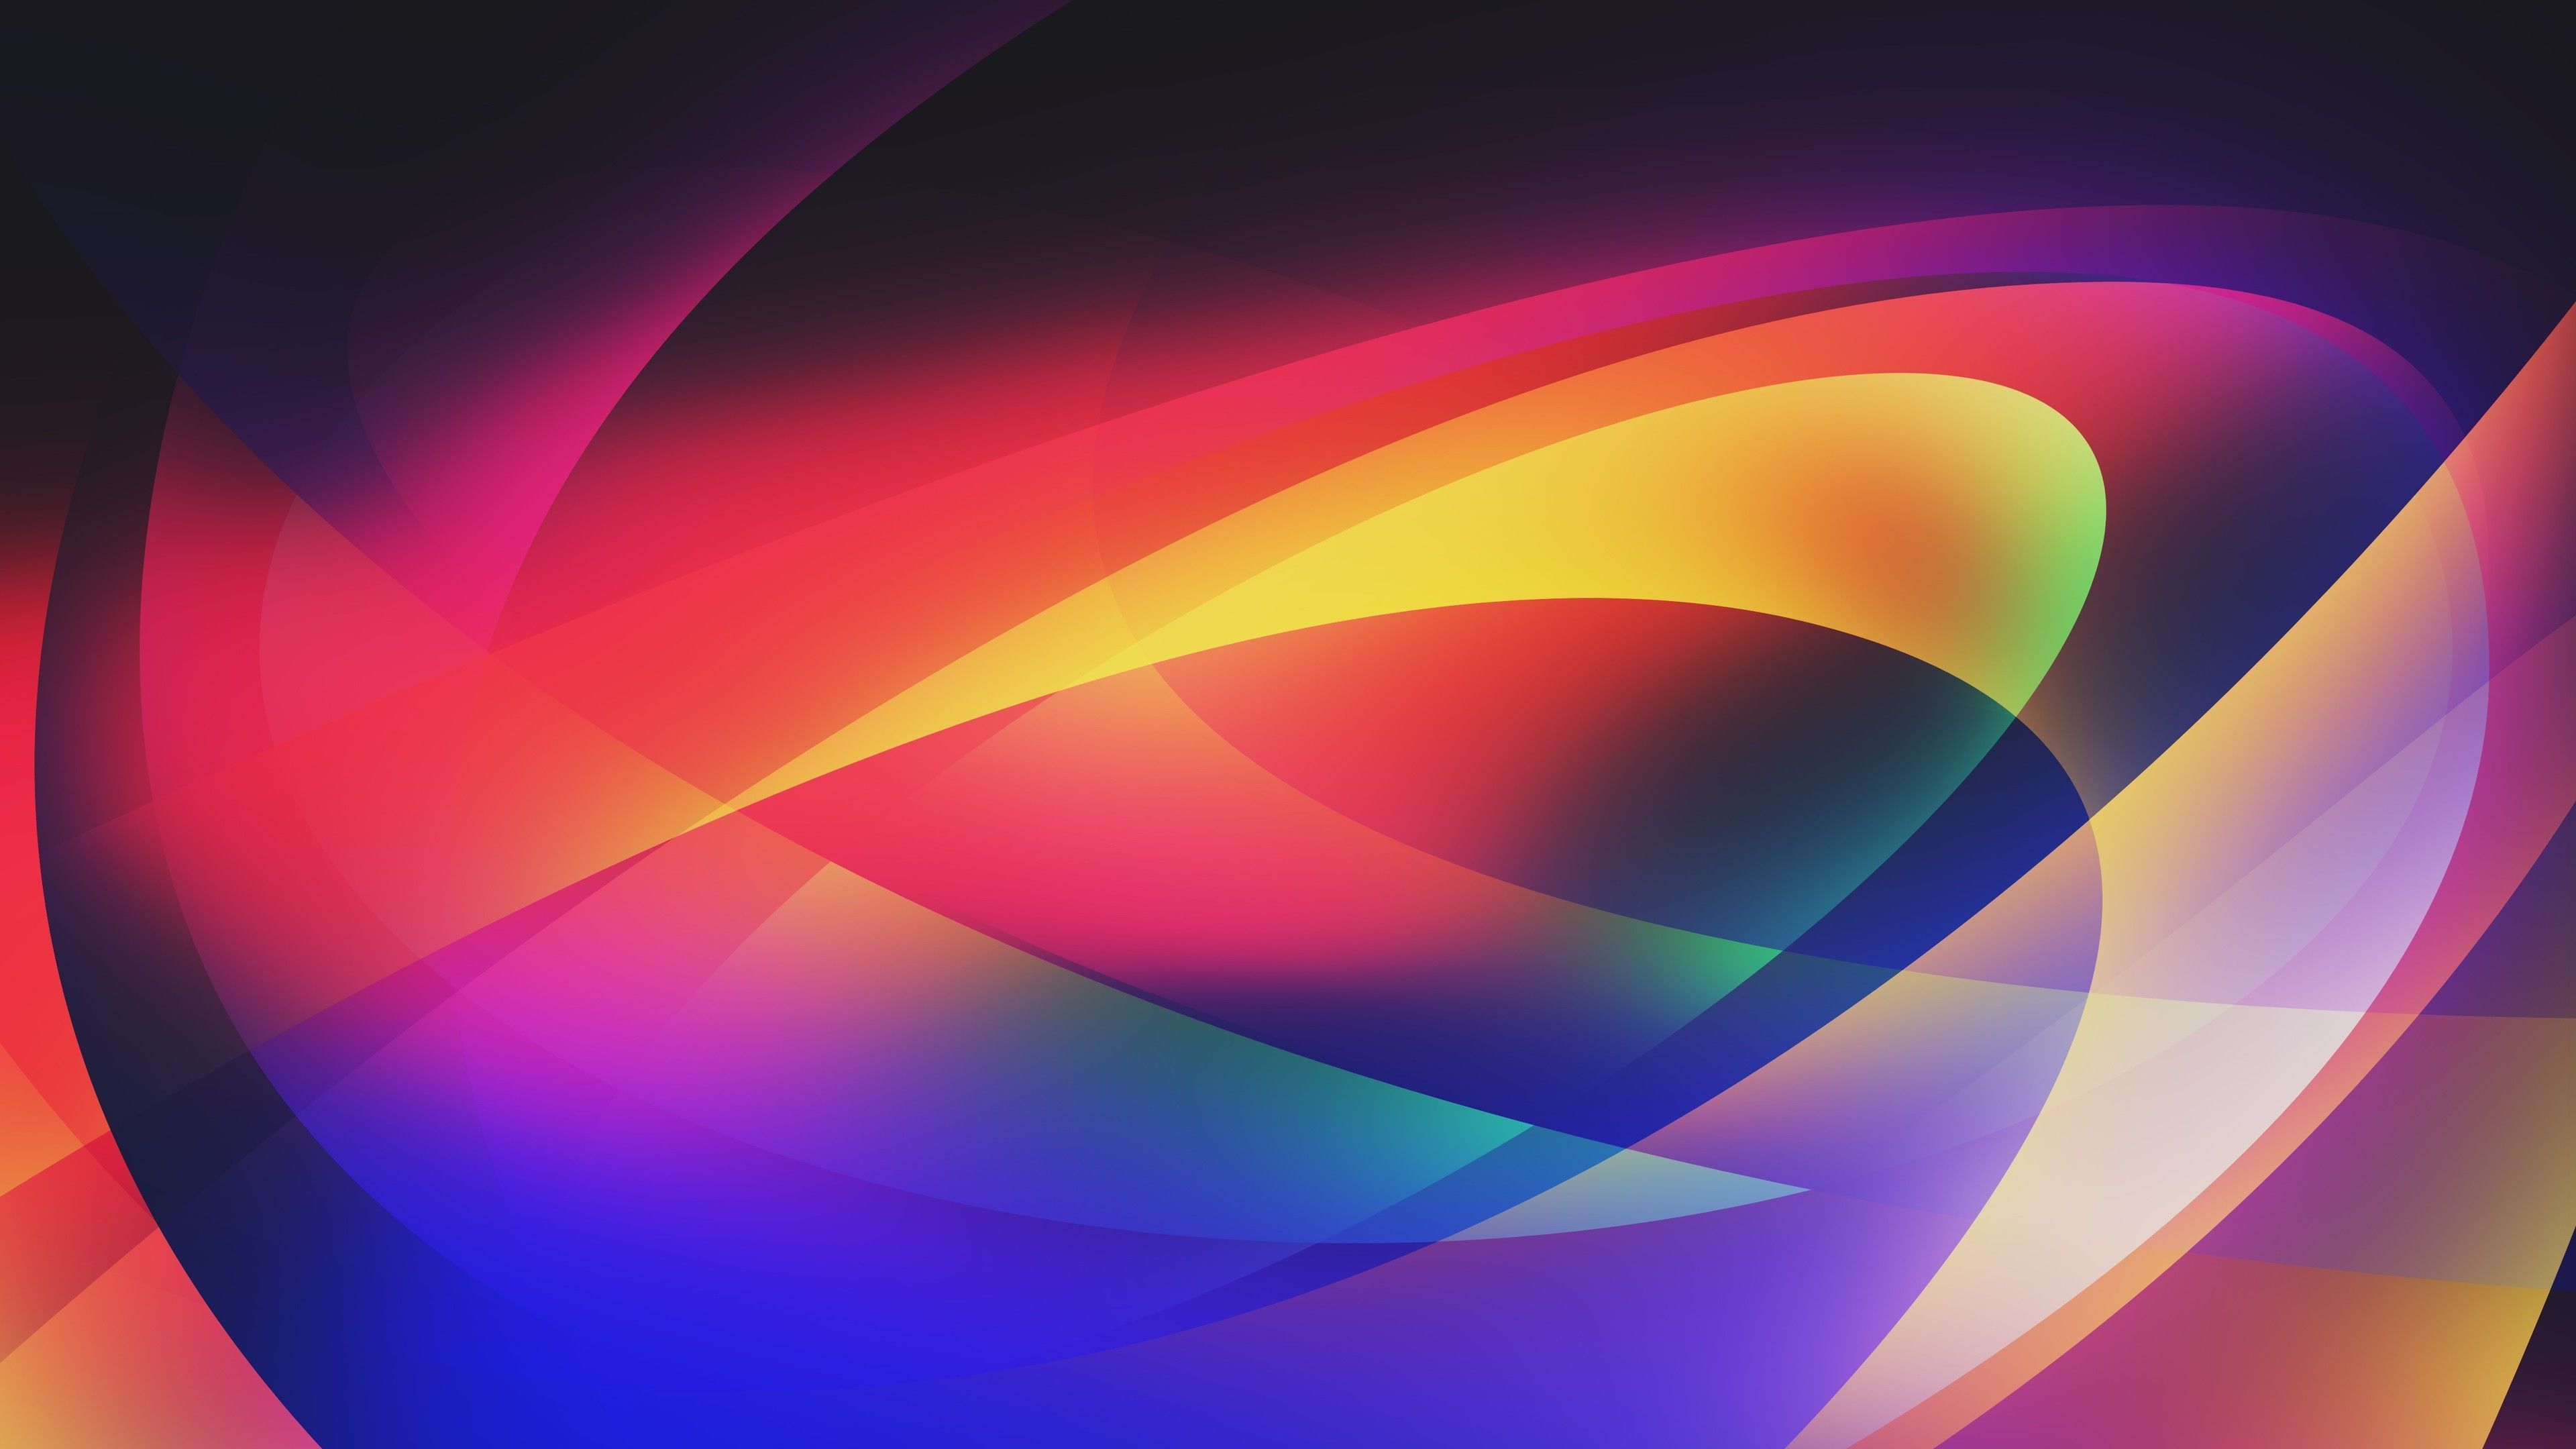 4k Abstract Colors Vector Vector Wallpapers Hd Wallpapers Colors Wallpapers Abstract Wallpapers 5k Wallpapers 4k Color Vector Abstract Abstract Wallpaper